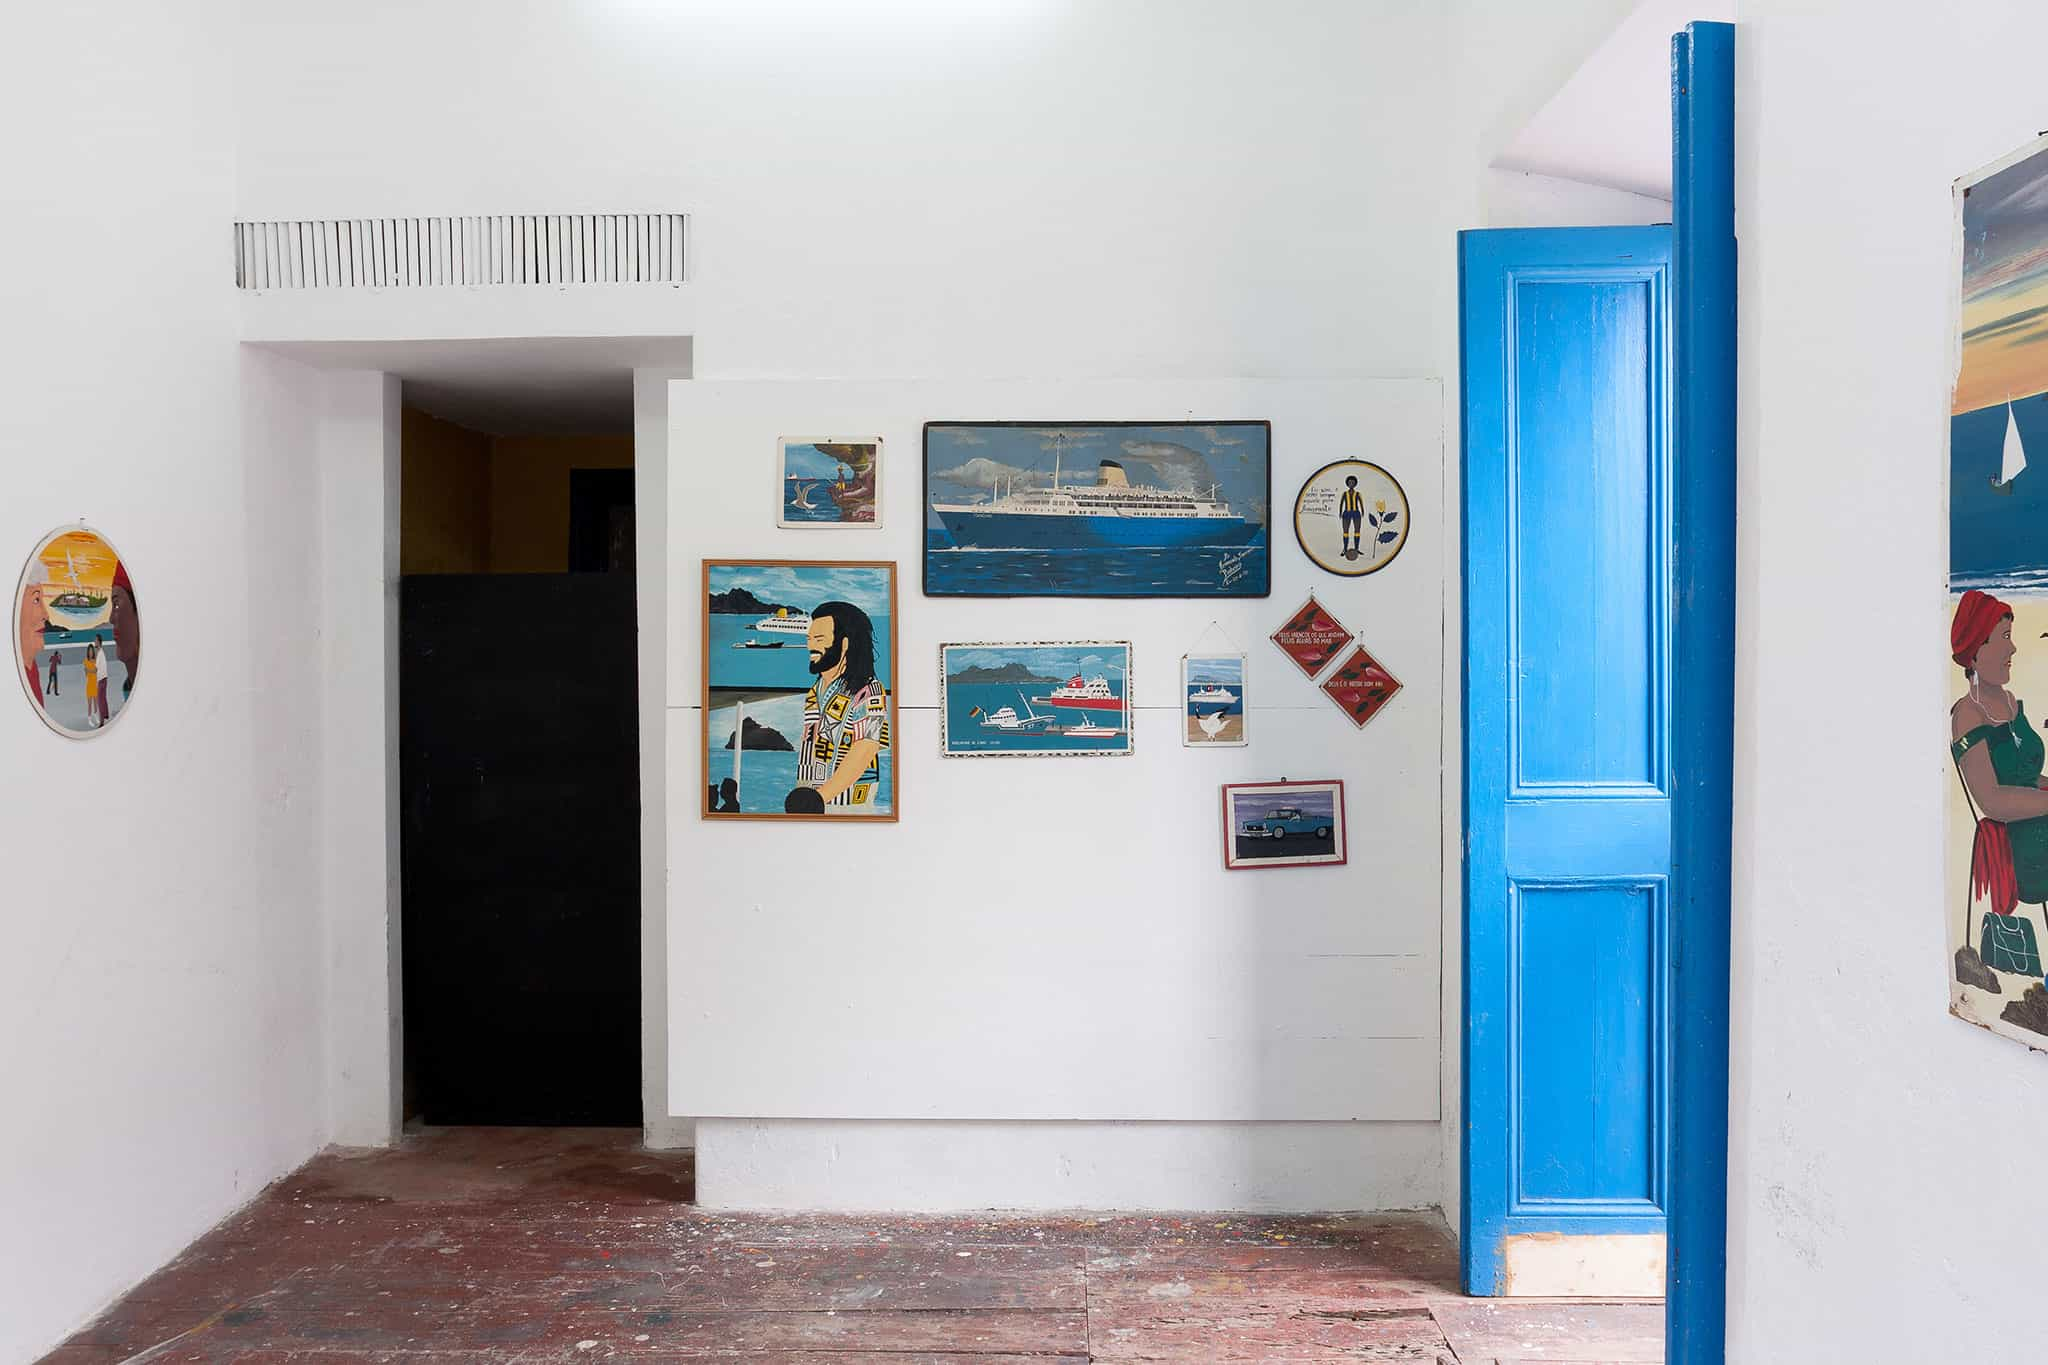 Partial view of the exhibition Mundo Cão (%22Dog World%22), with works by the late Armando Pinheiro (co-curated with Elisângela Monteiro)